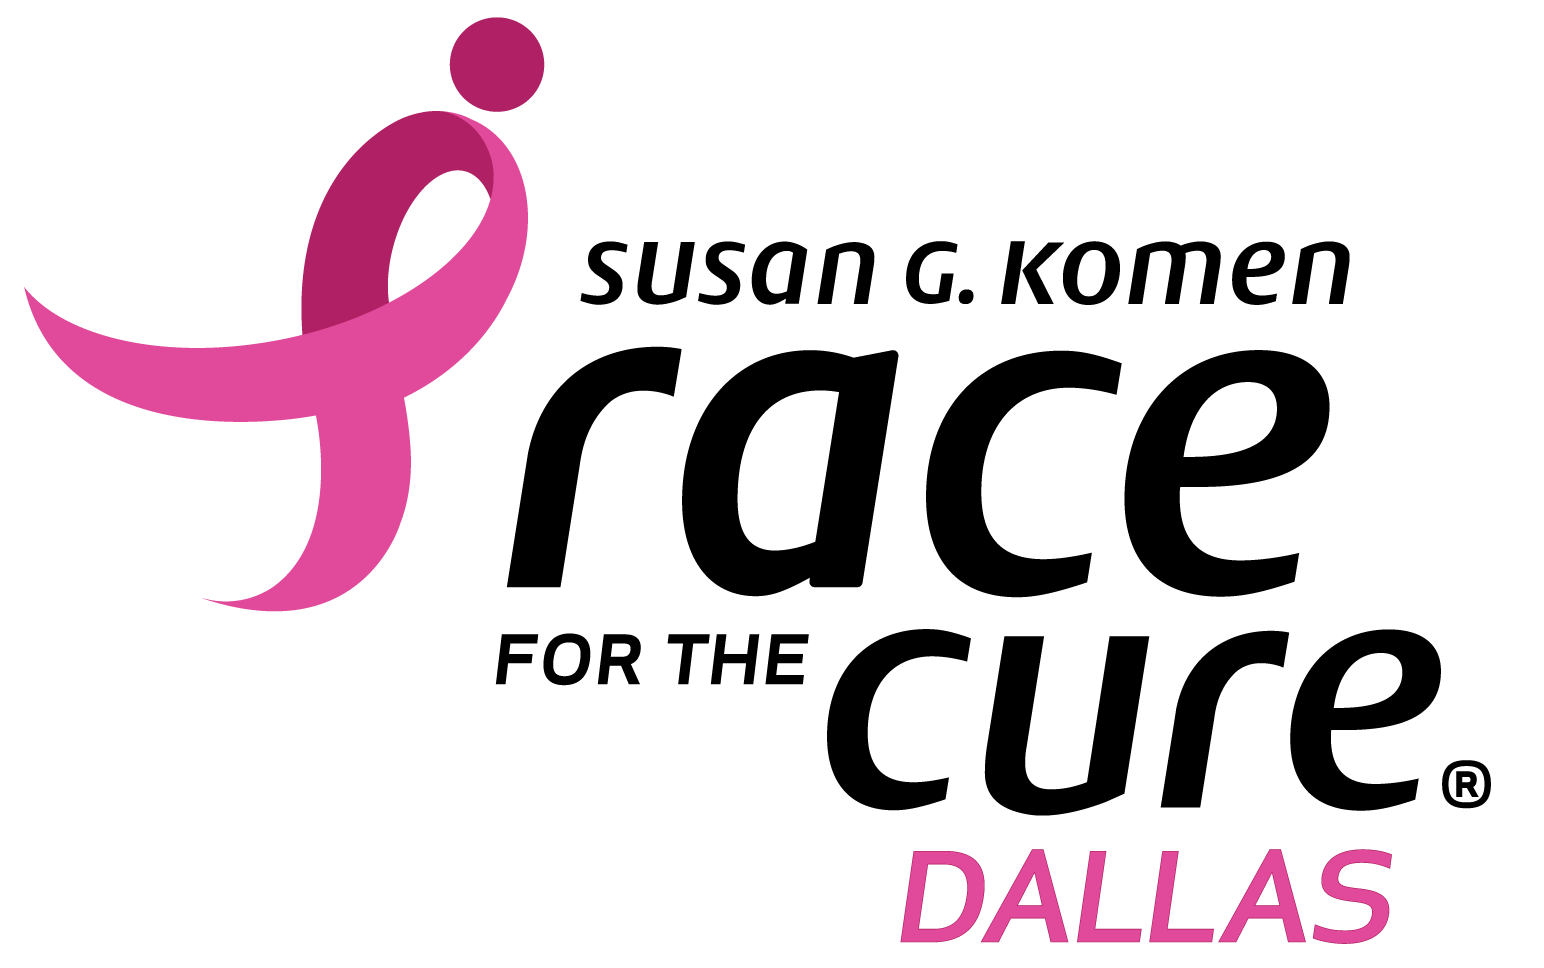 DALLAS RACE 3 Color Black Transparent.png